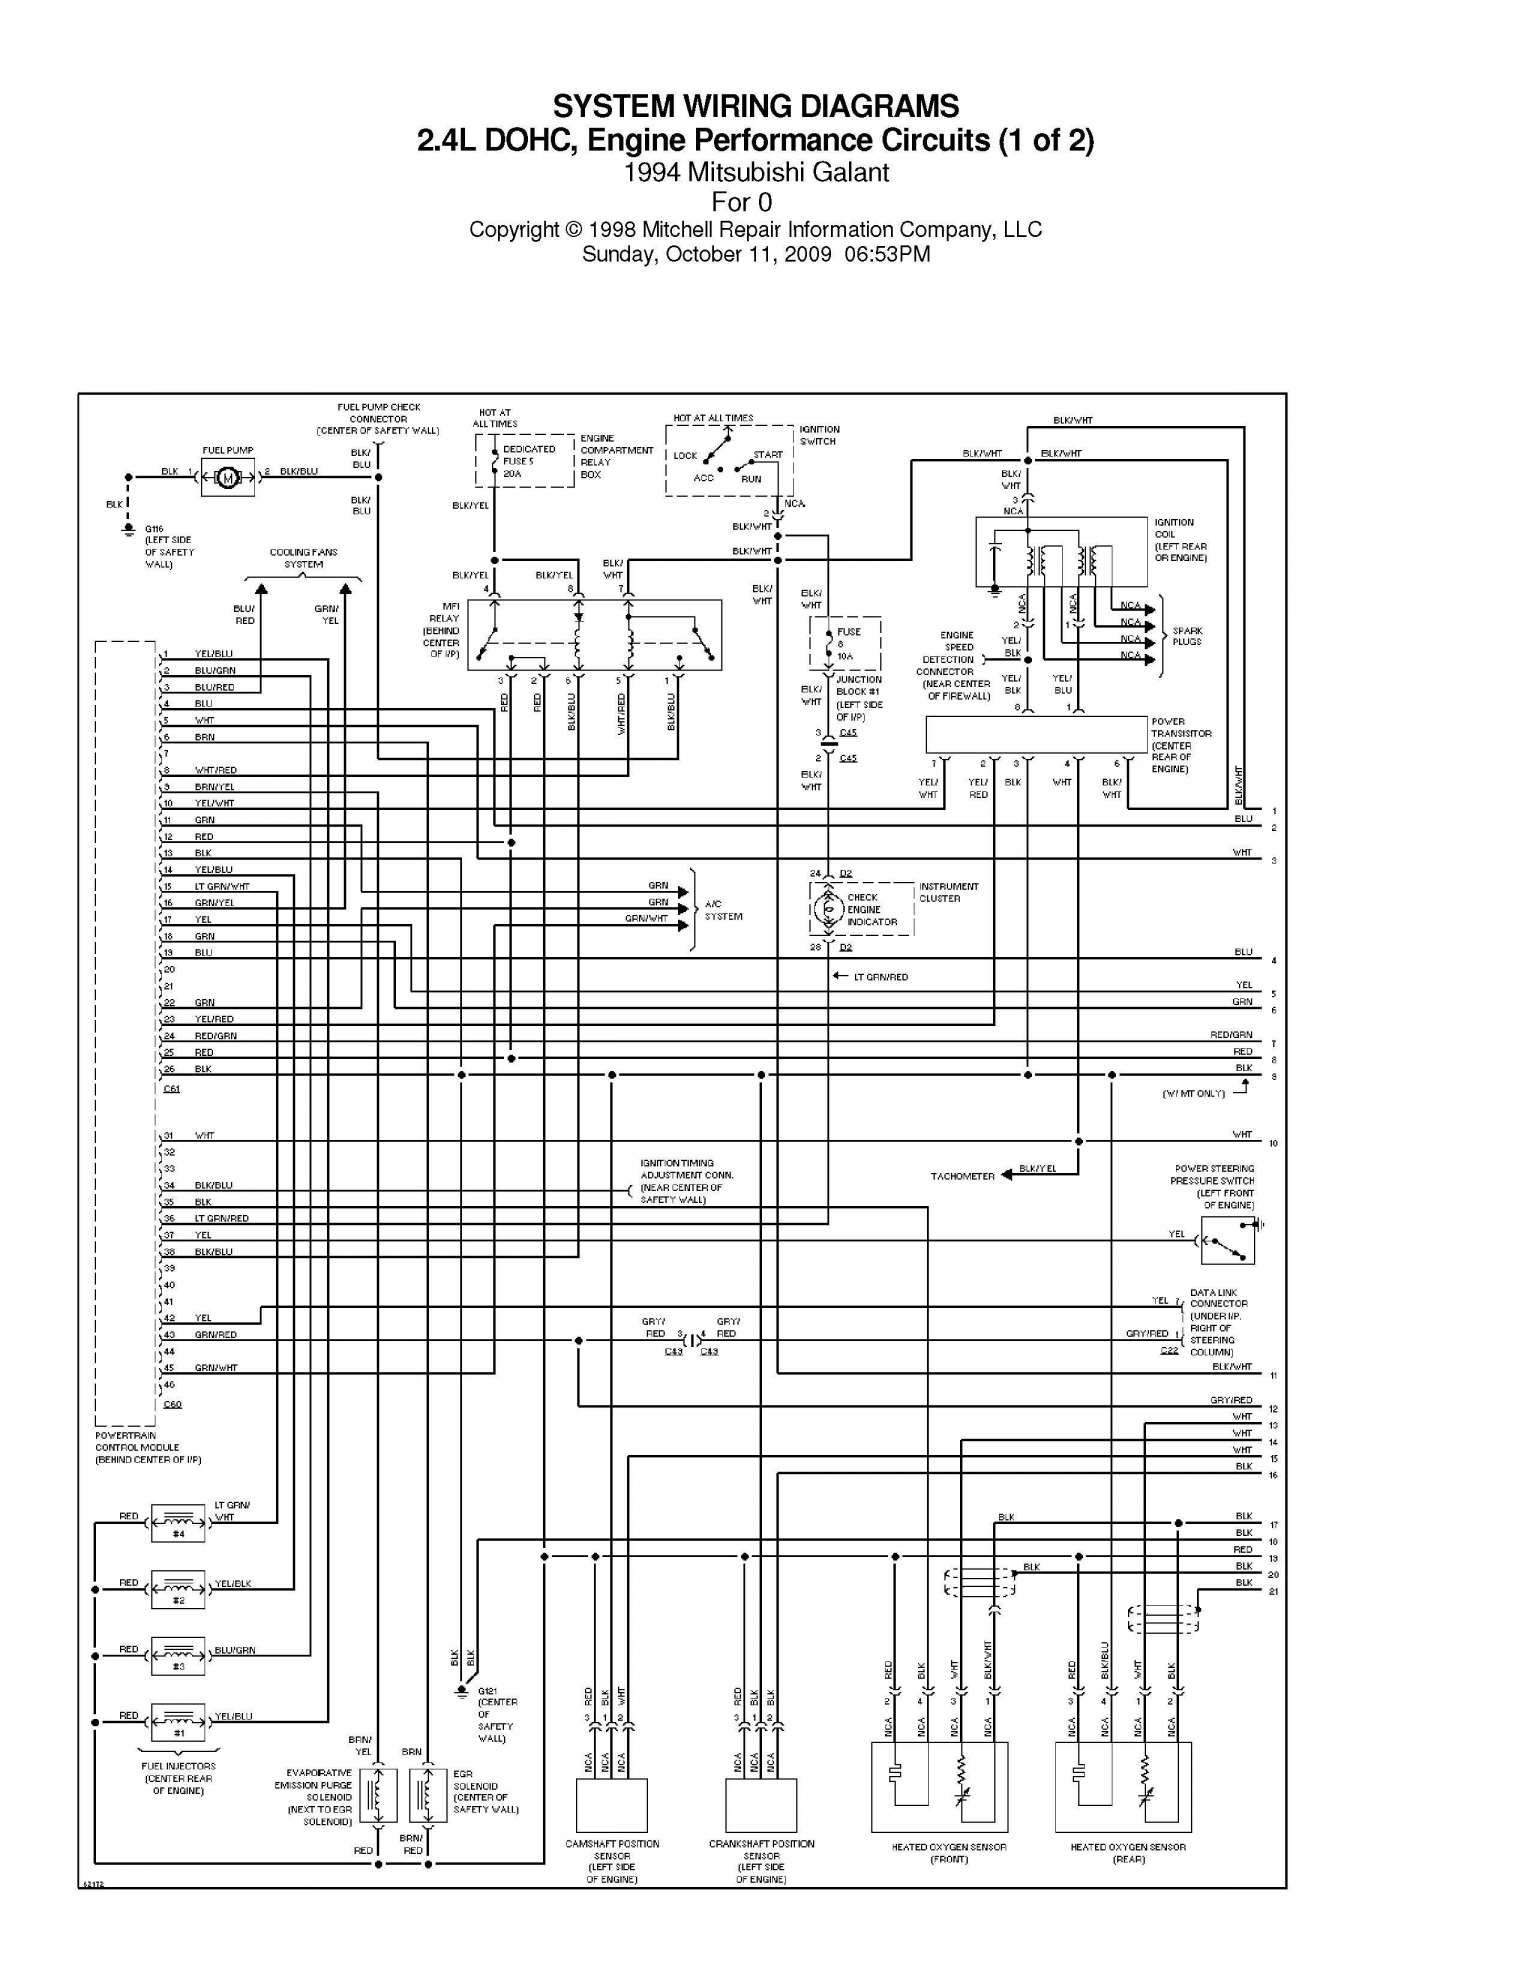 16+ 3000Gt Engine Wiring Diagram Check more at https